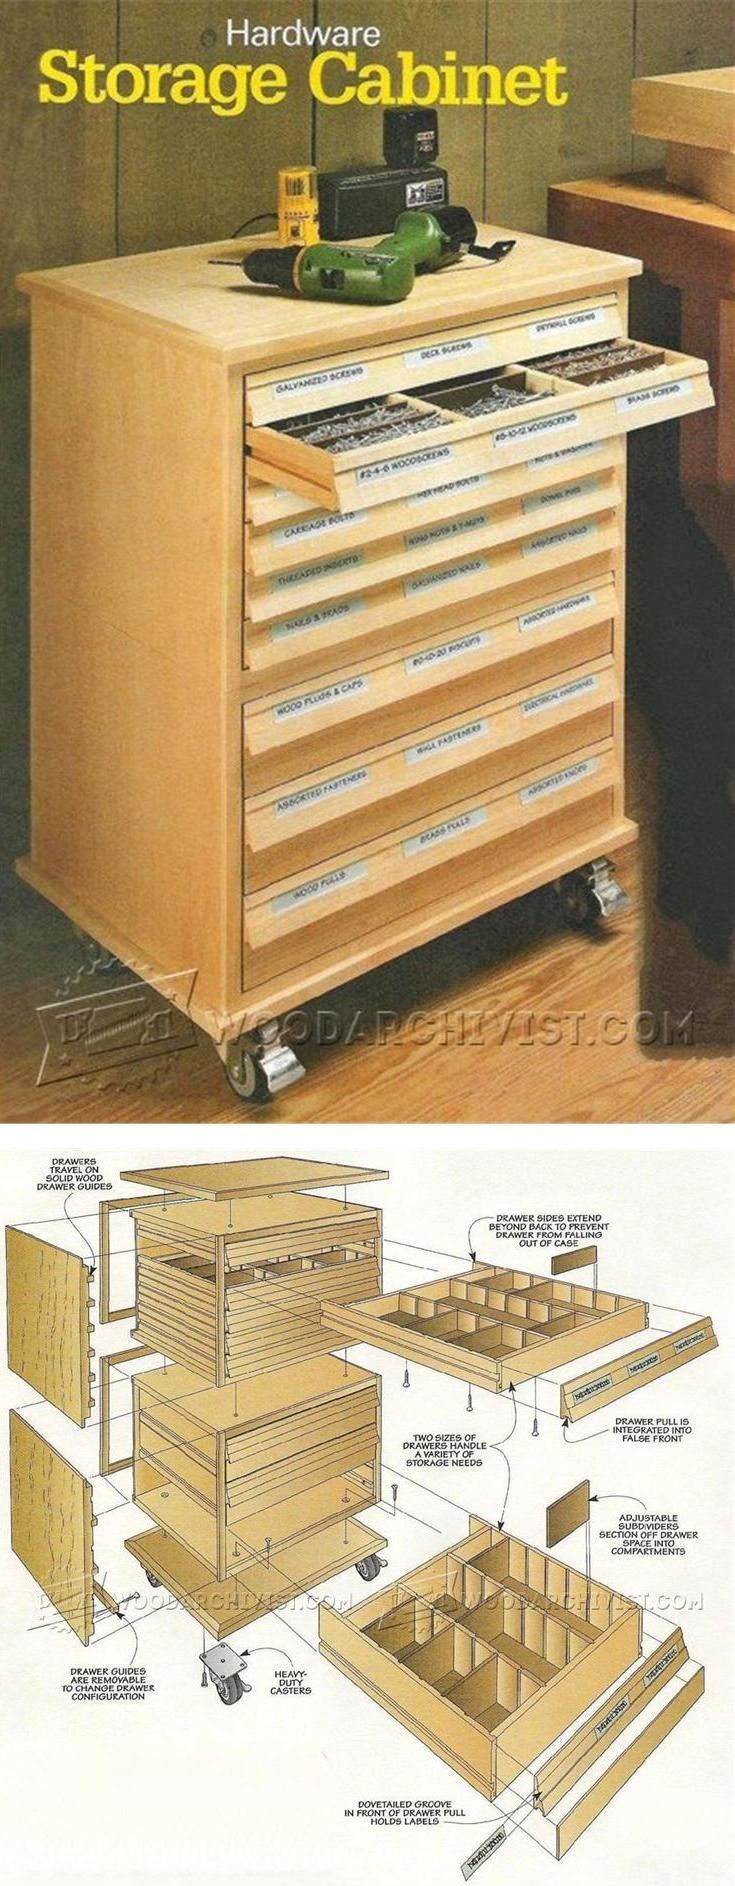 25+ best ideas about Tool storage cabinets on Pinterest